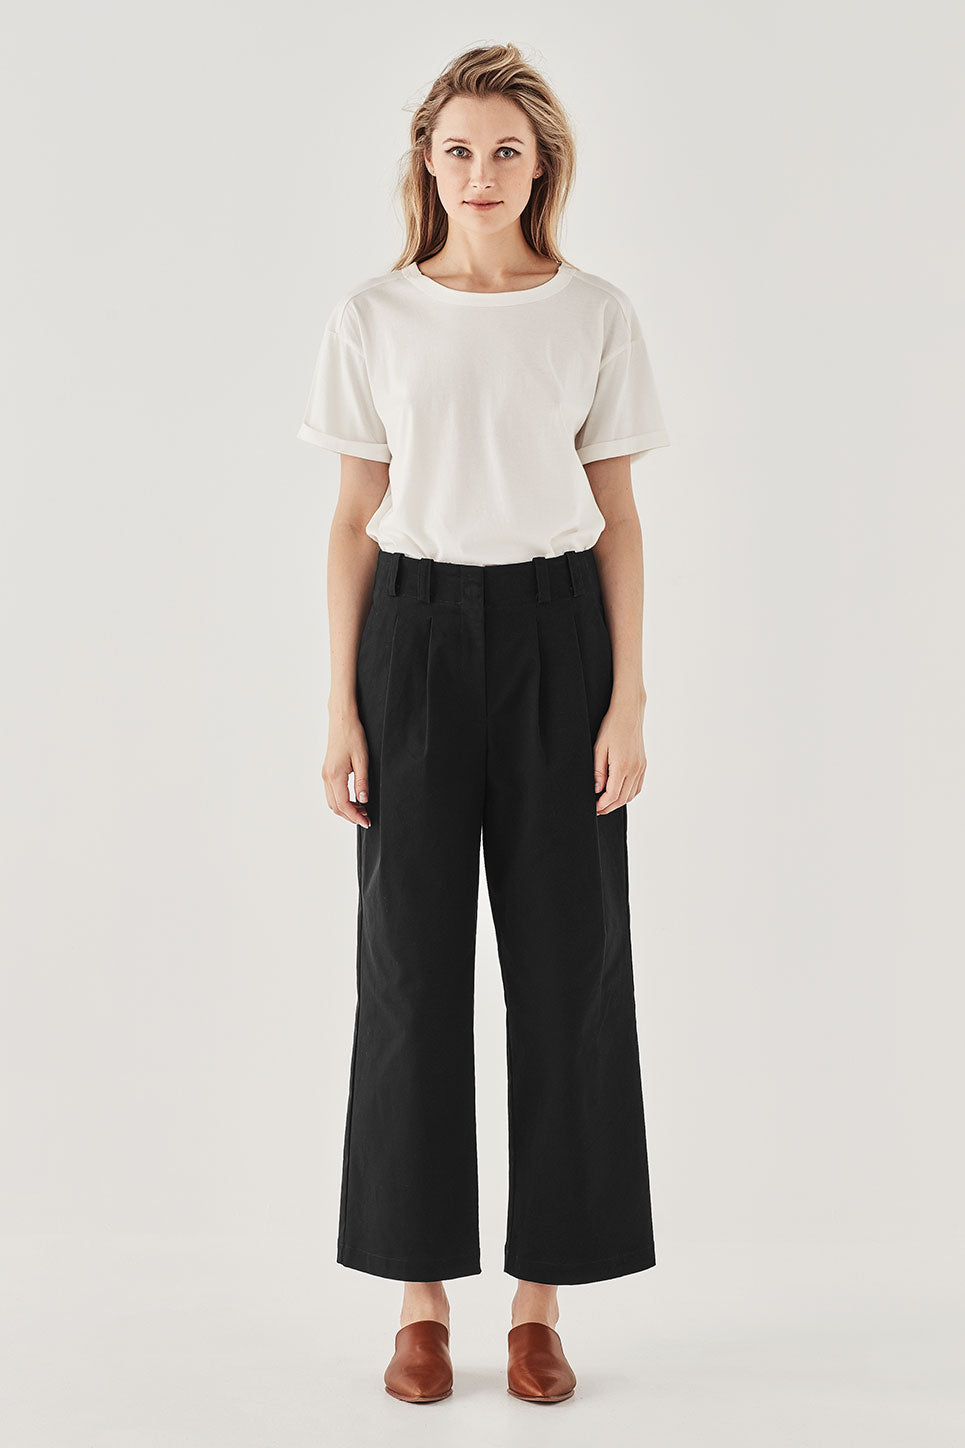 The Delamore Trouser in Black